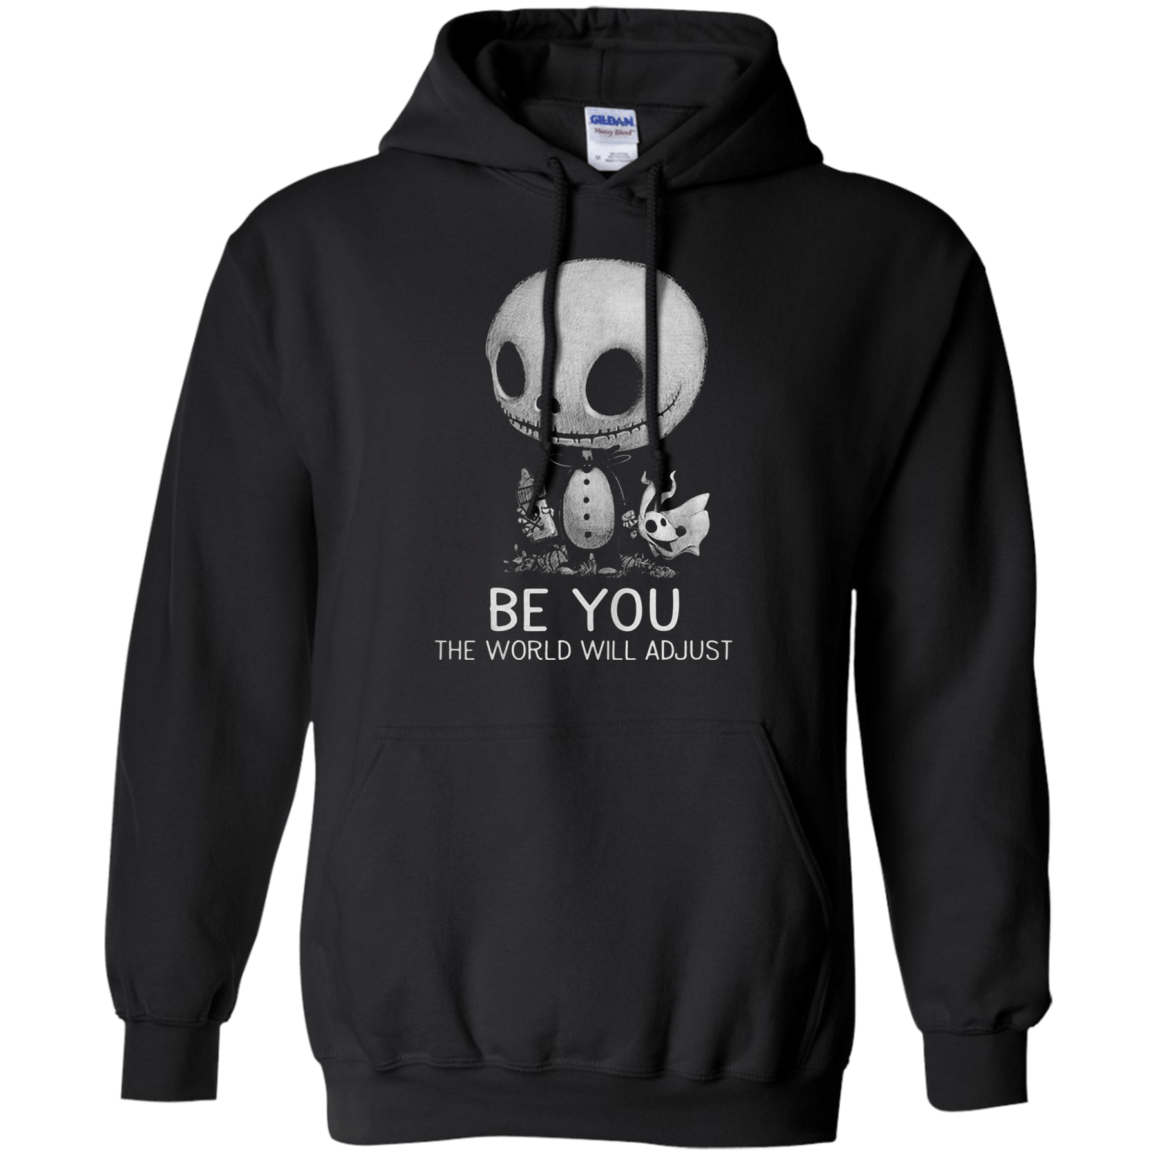 Be You The World Will Adjust G185 Gildan Pullover Hoodie 8 oz